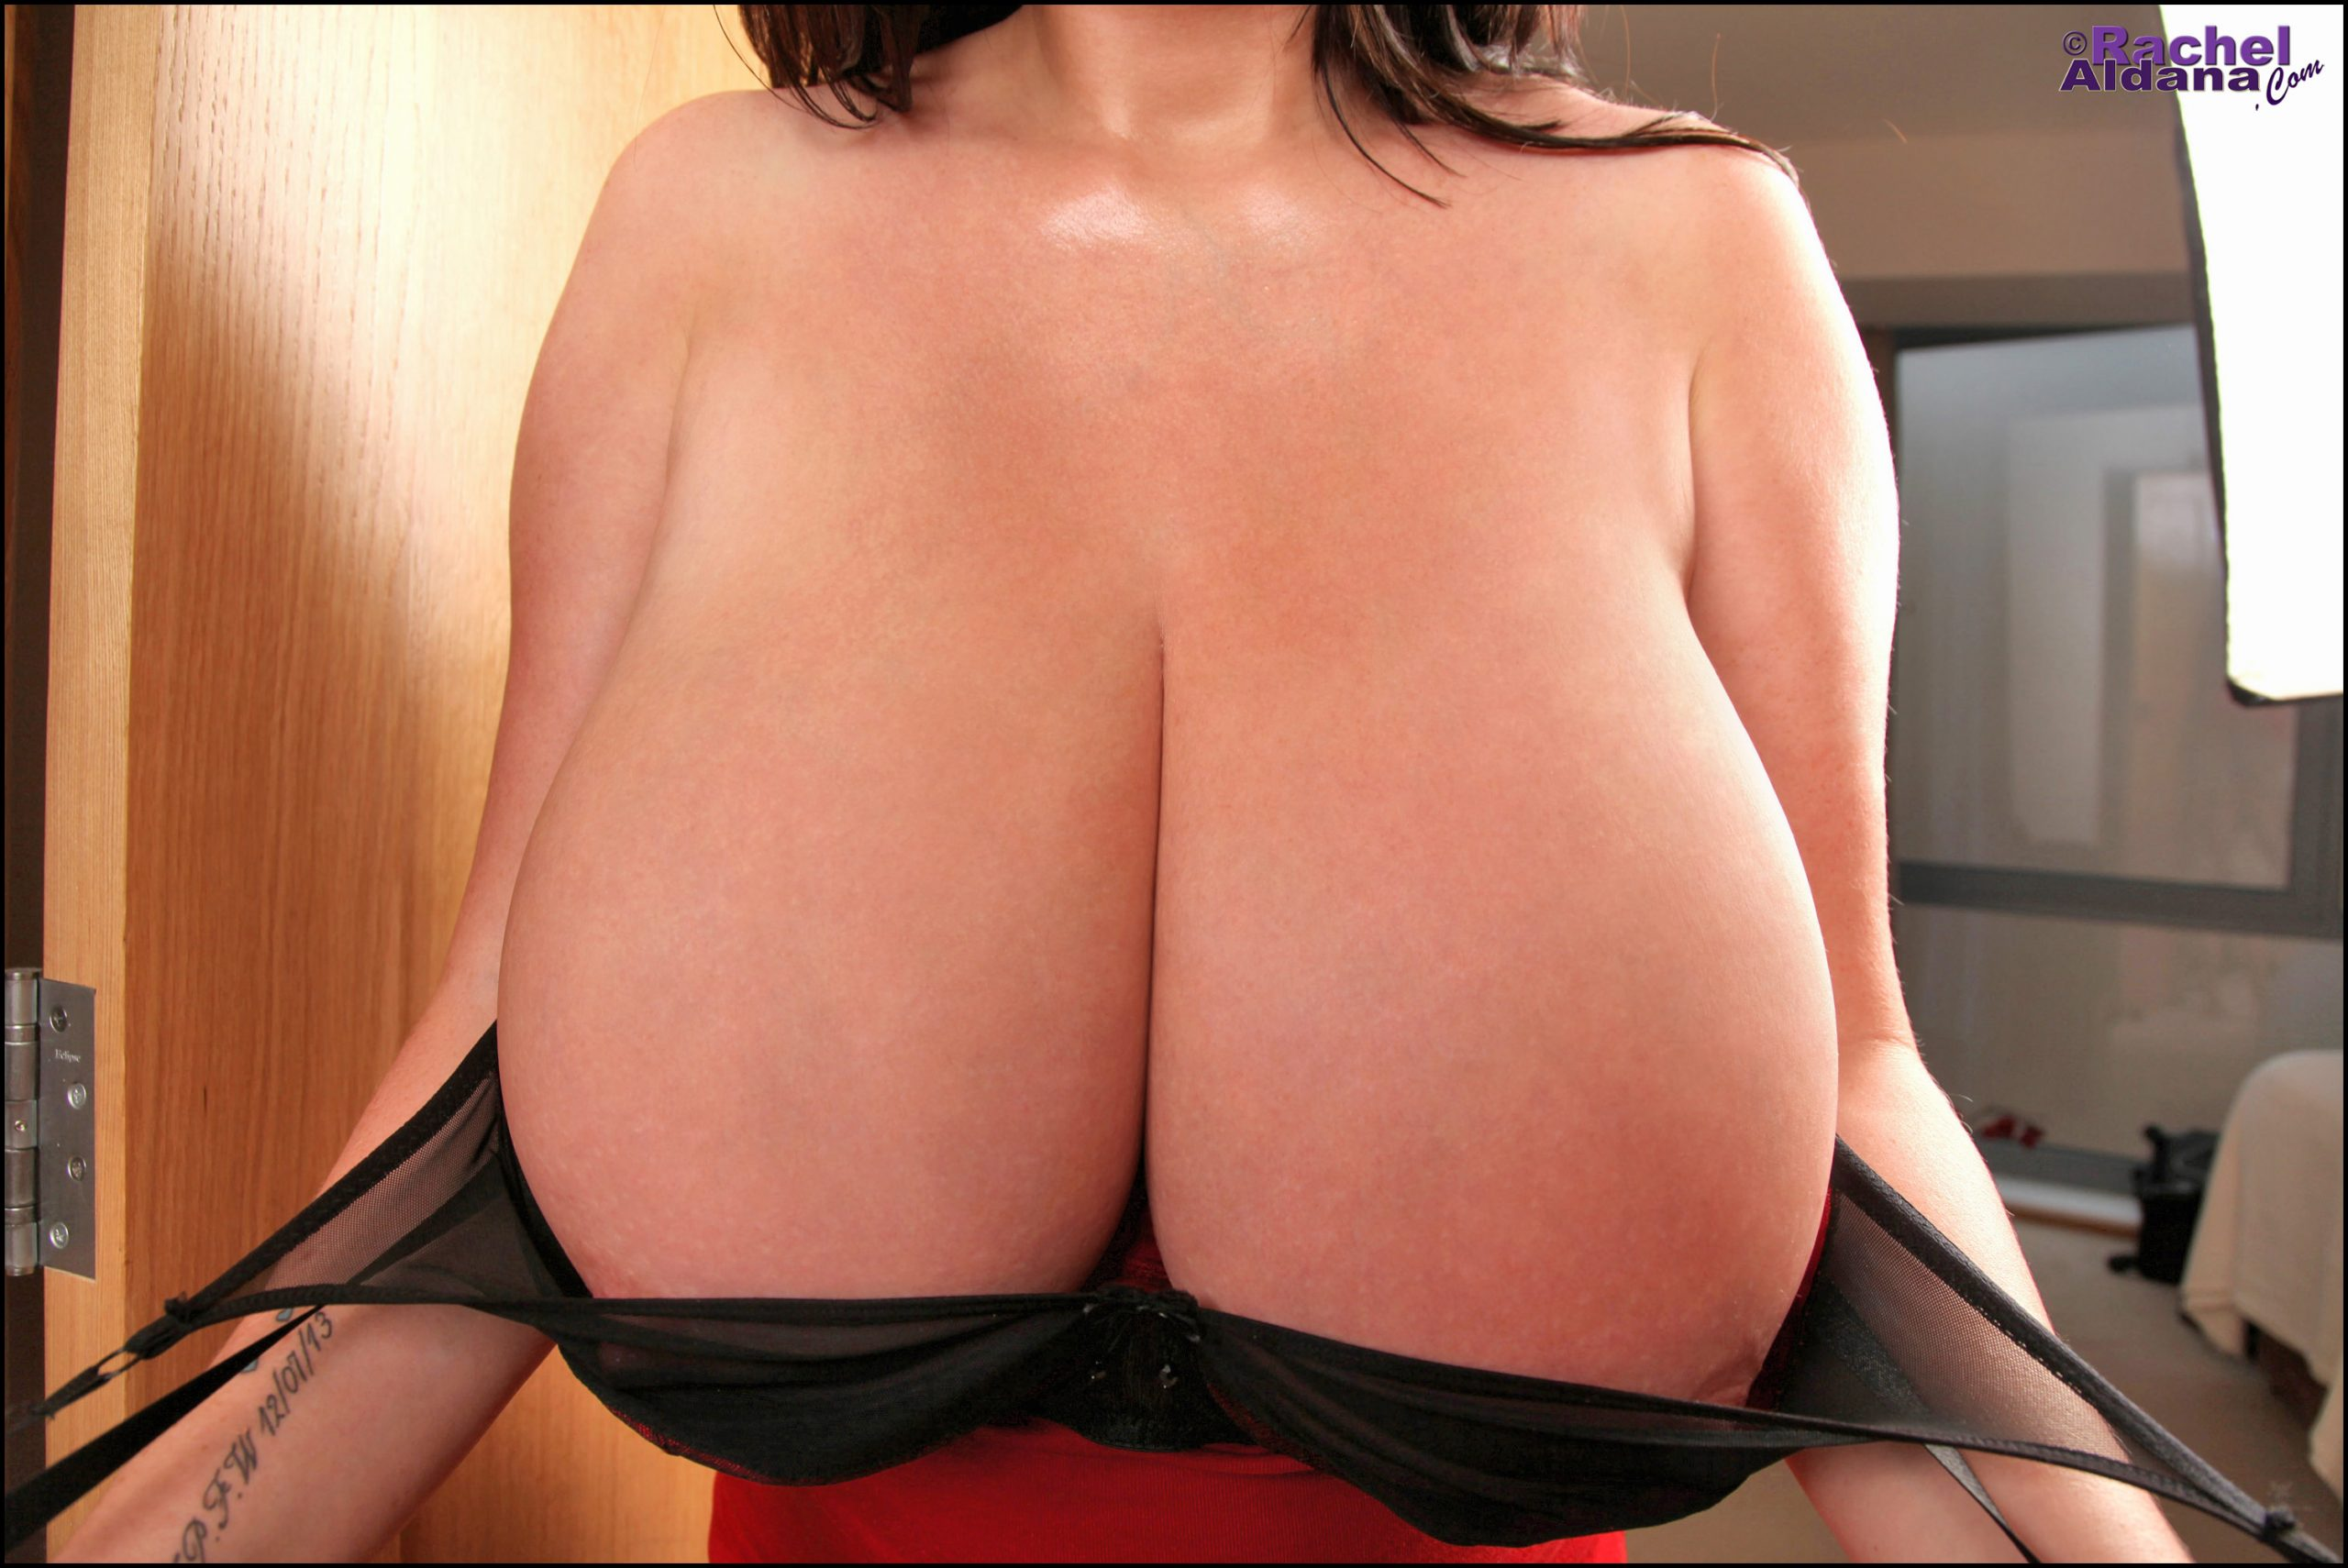 achel Aldana Huge Tits in Red and Black Bra